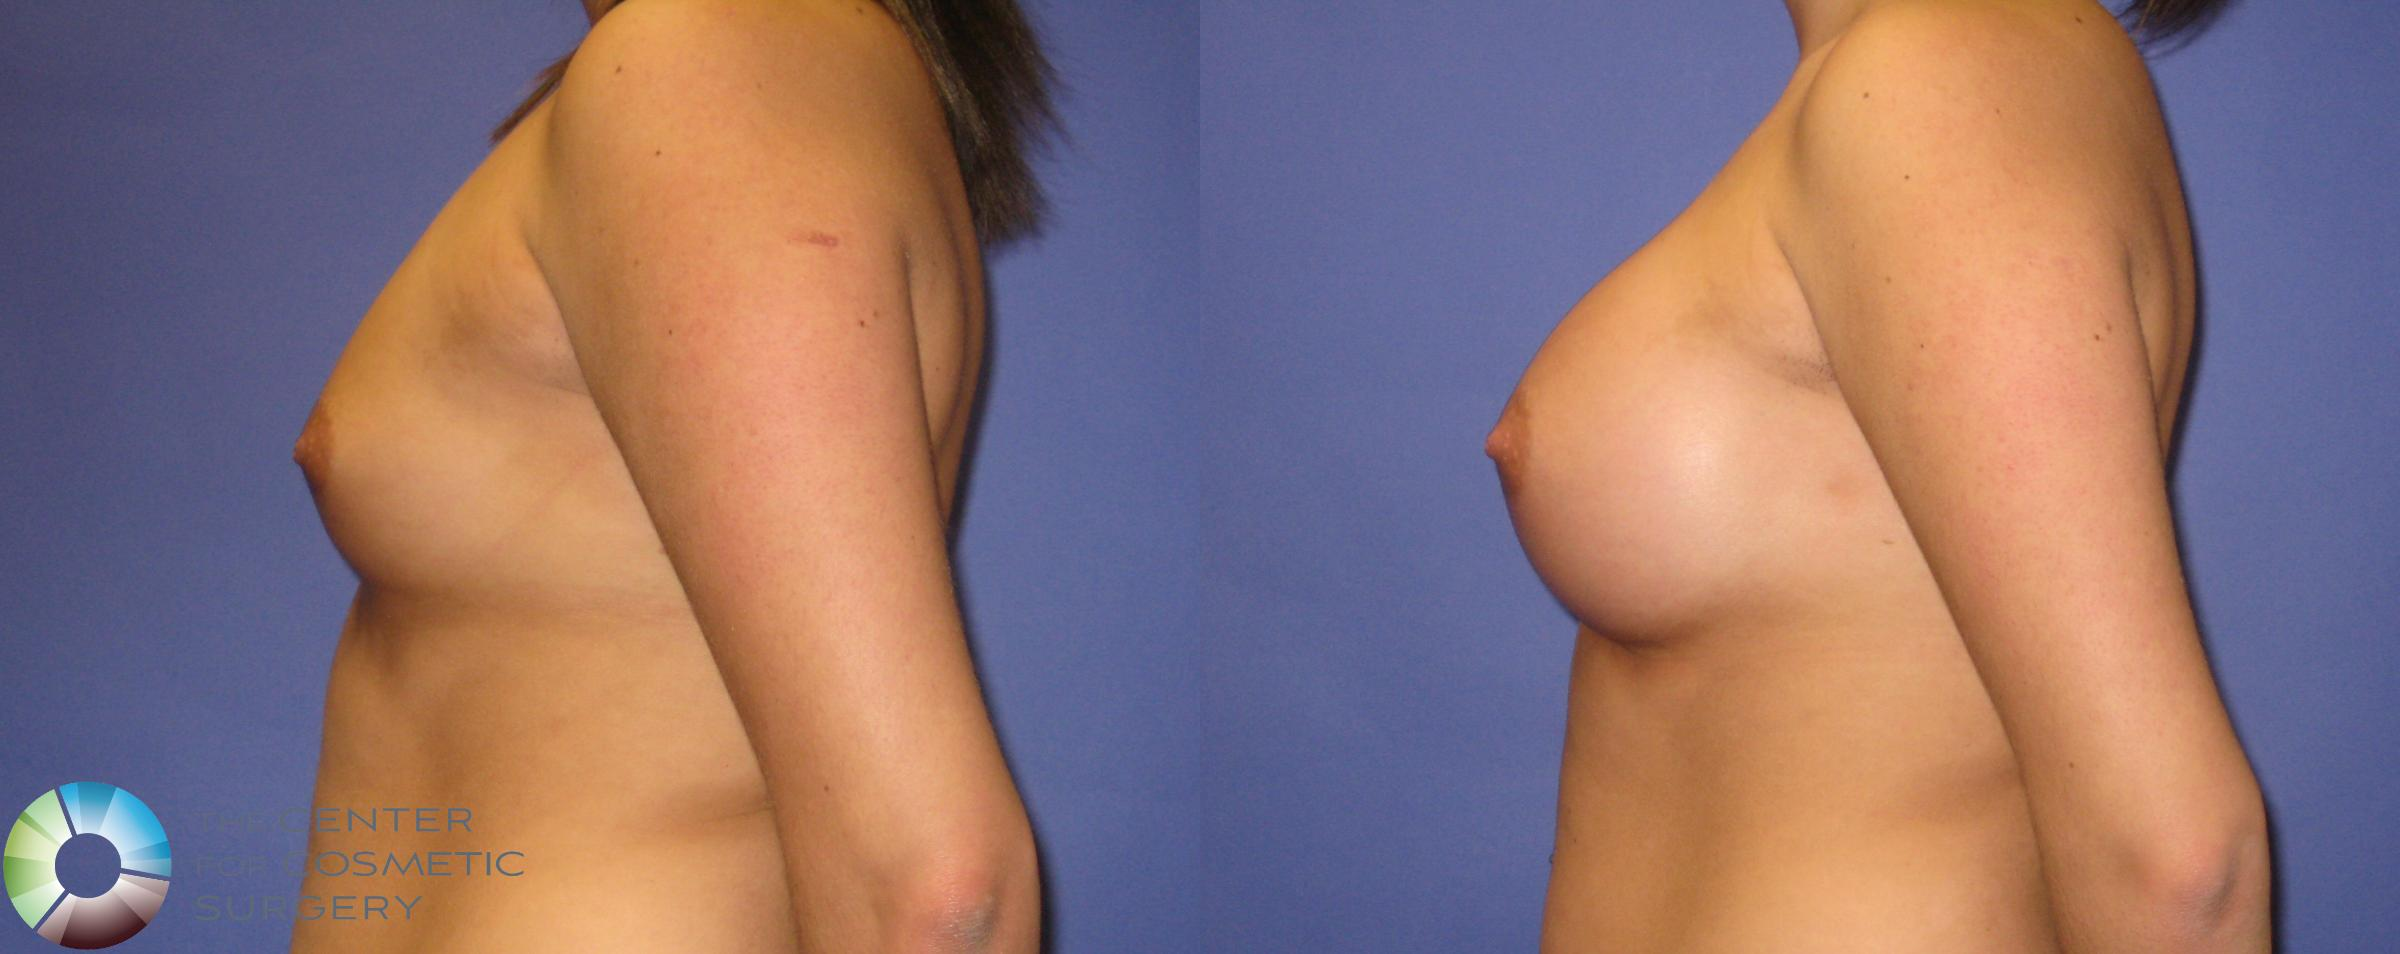 Breast Augmentation Case 352 Before & After View #3 | Golden, CO | The Center for Cosmetic Surgery